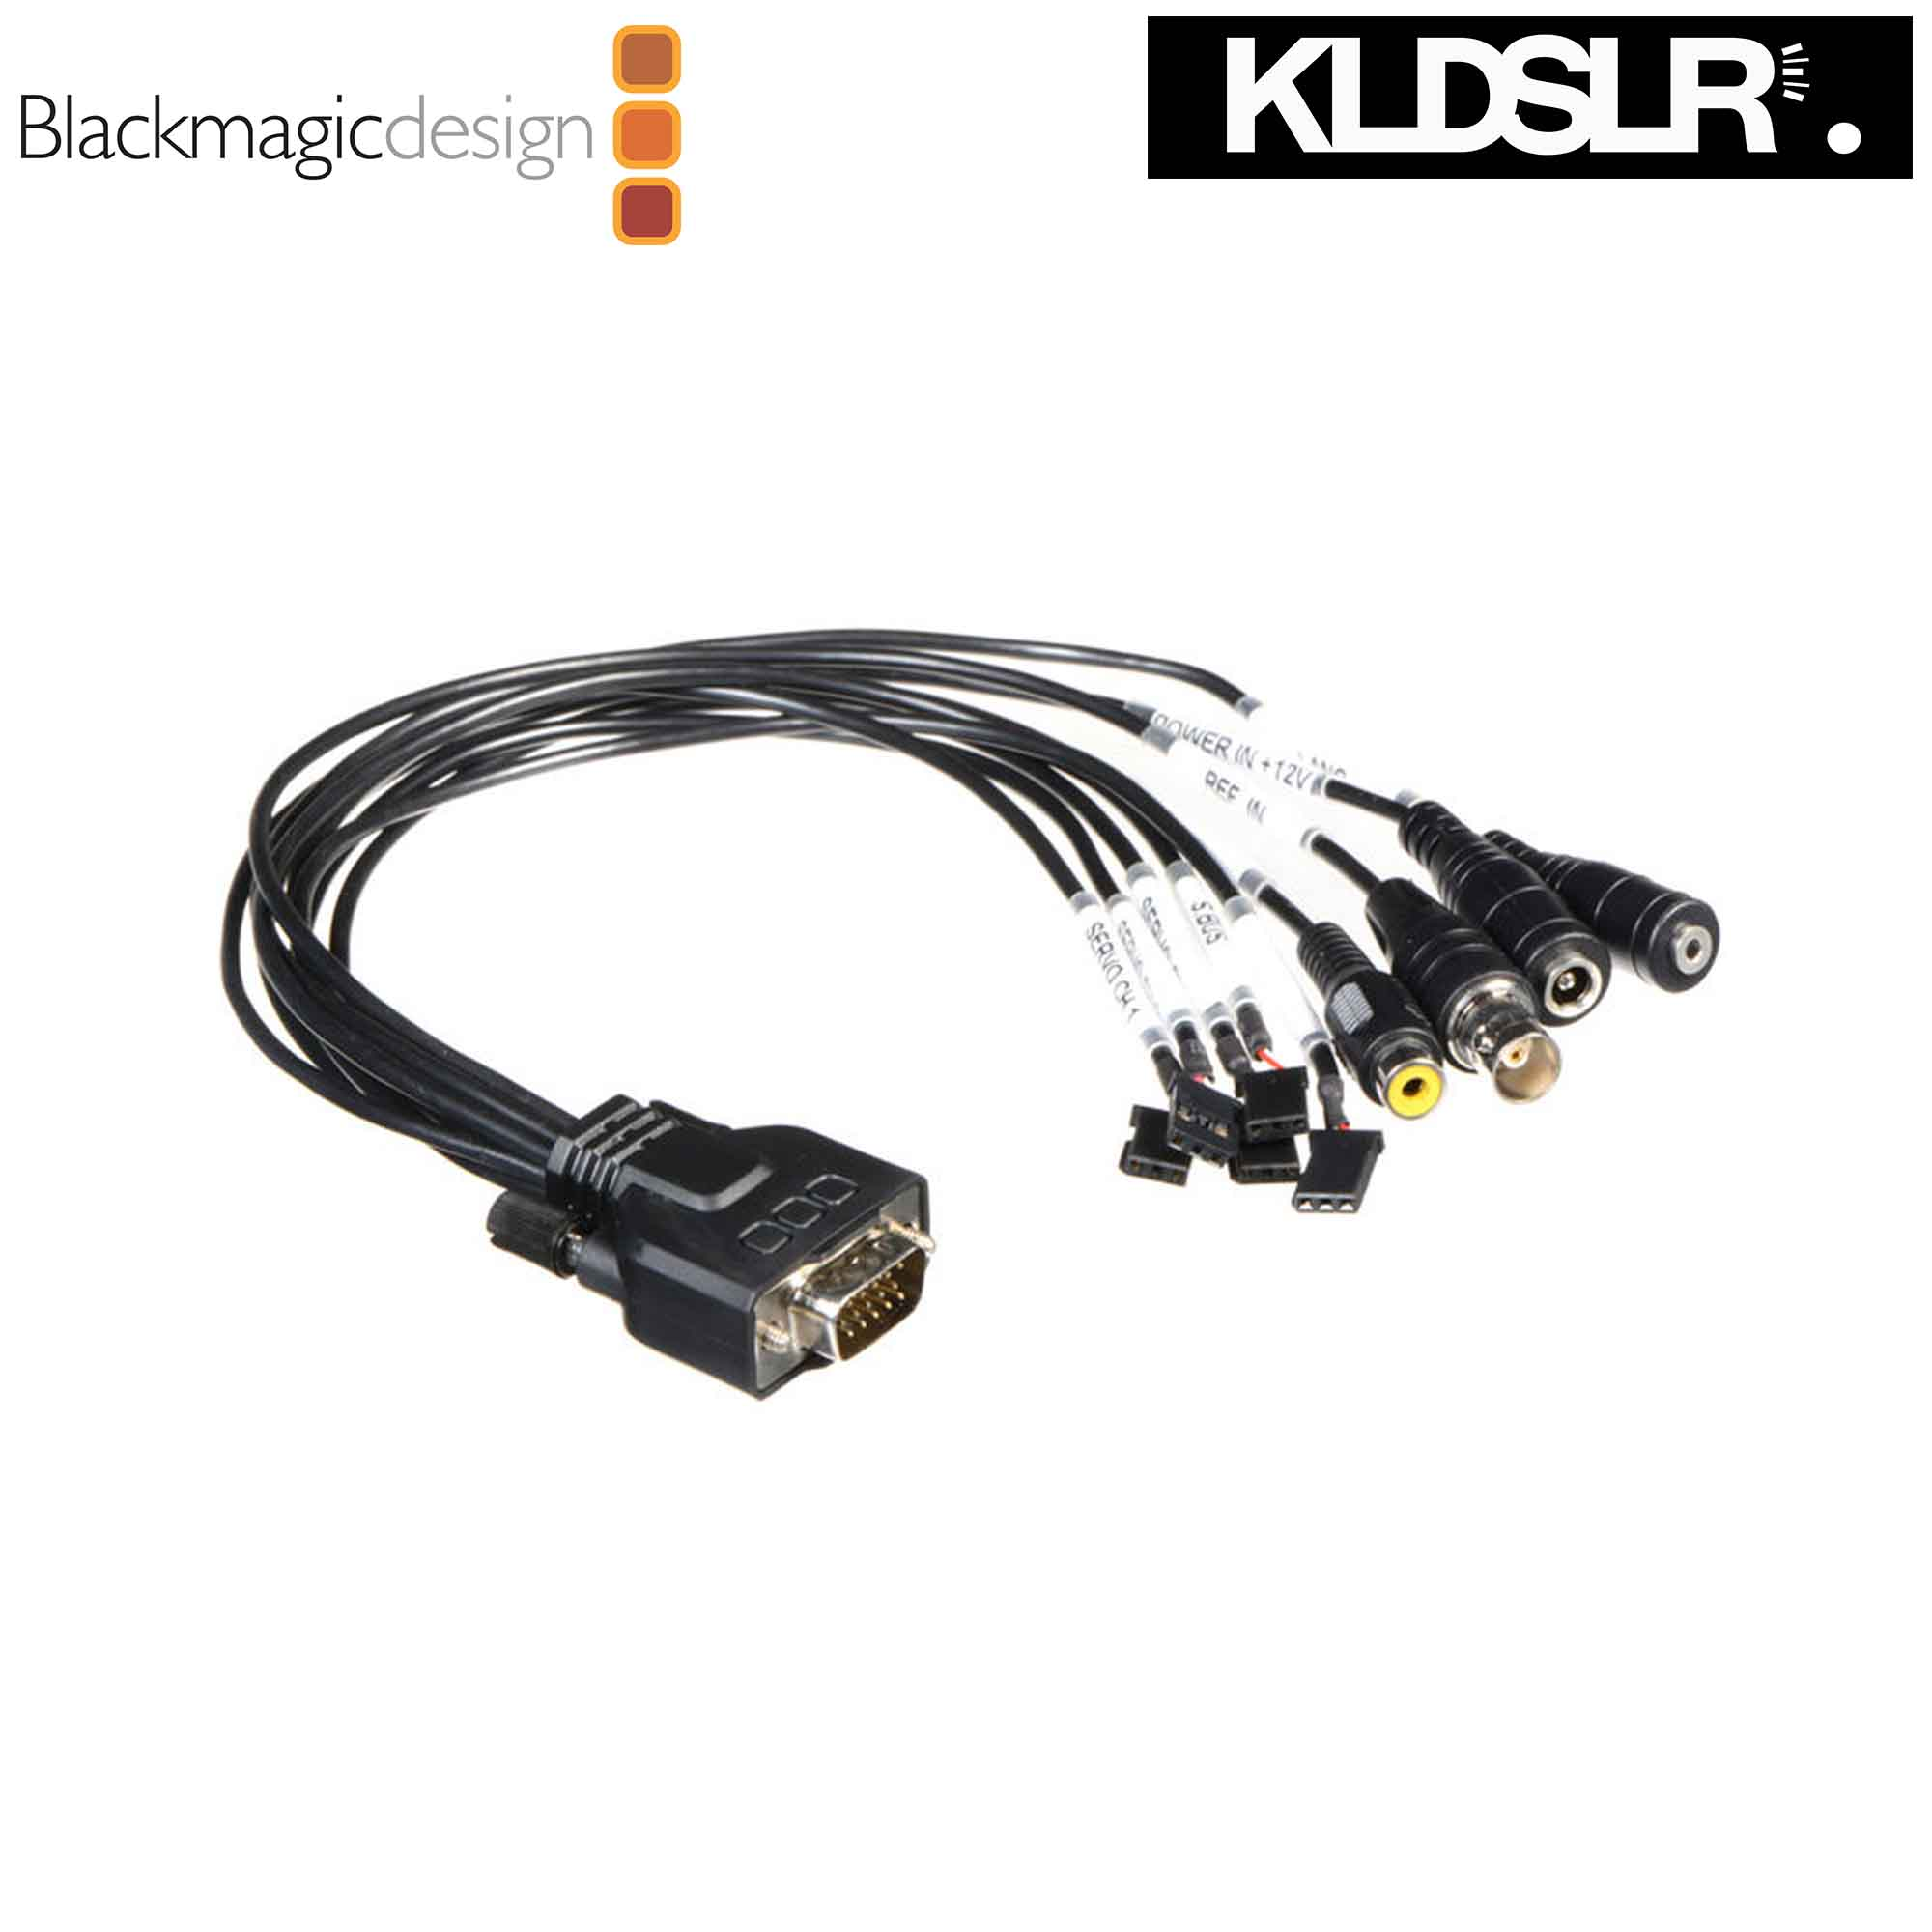 Blackmagic Design Expansion Cable for Micro Cinema Camera (Blackmagic Malaysia)